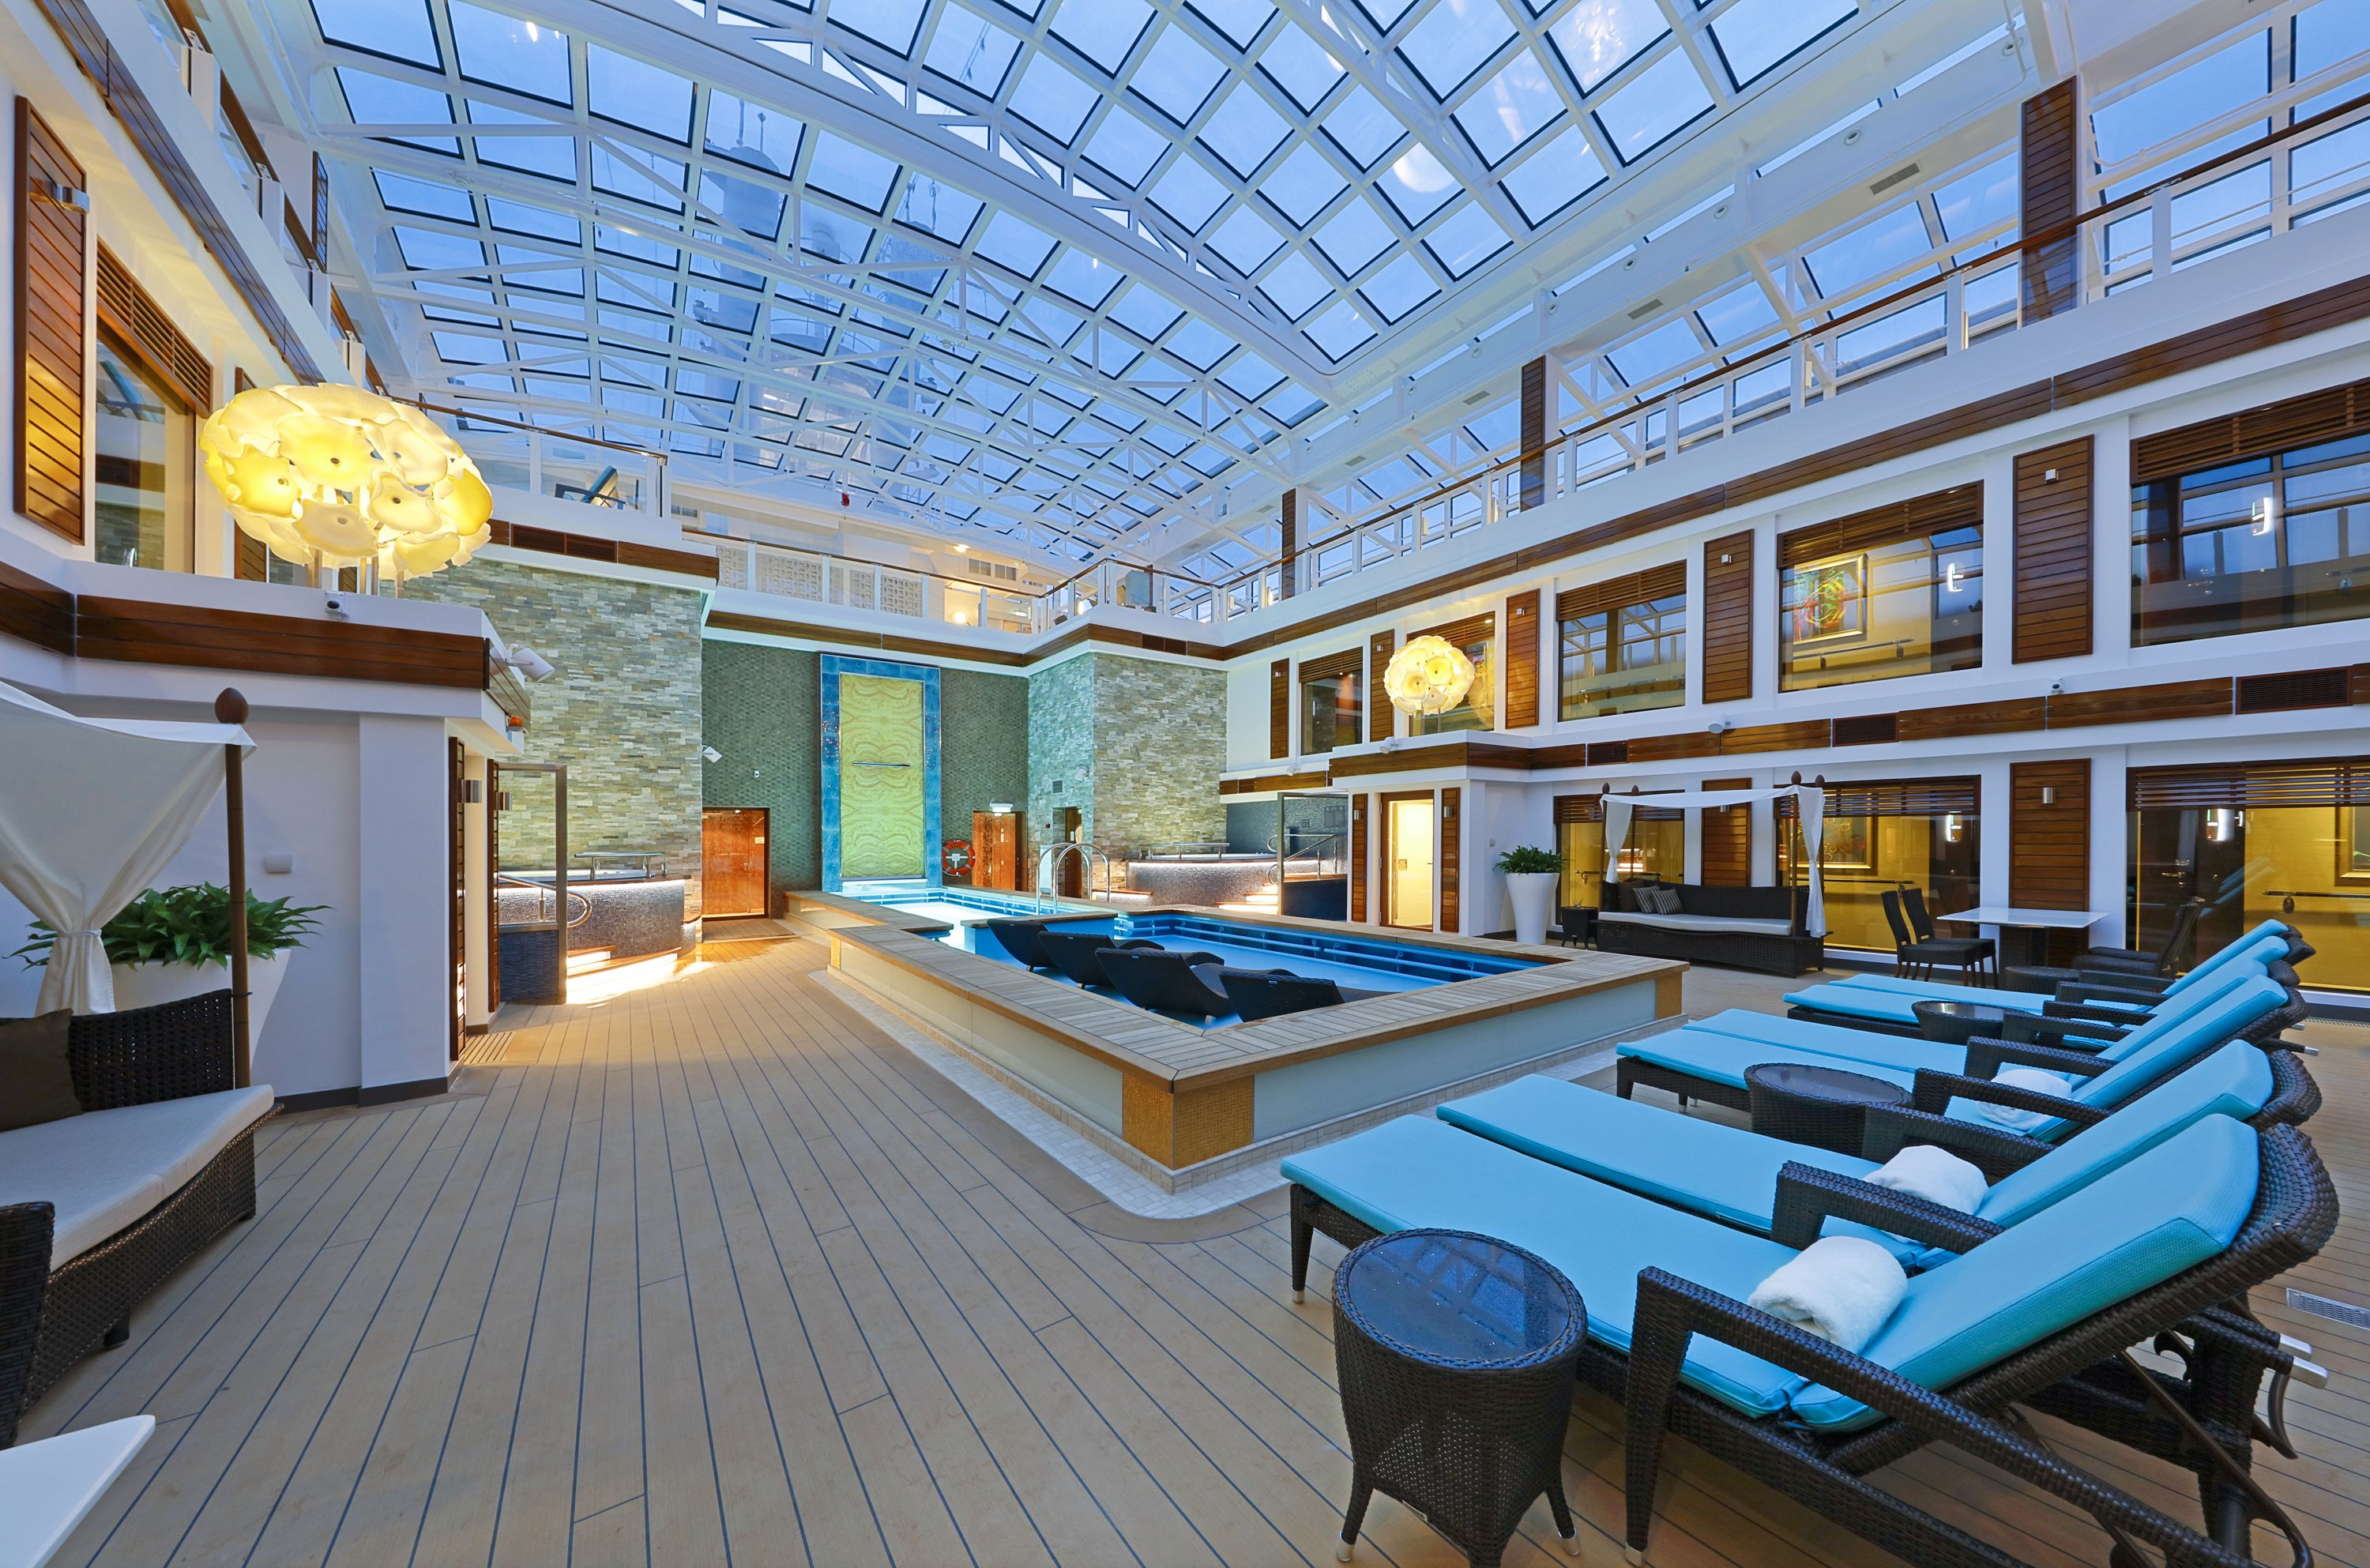 The Haven On The Norwegian Escape Cruise Ship